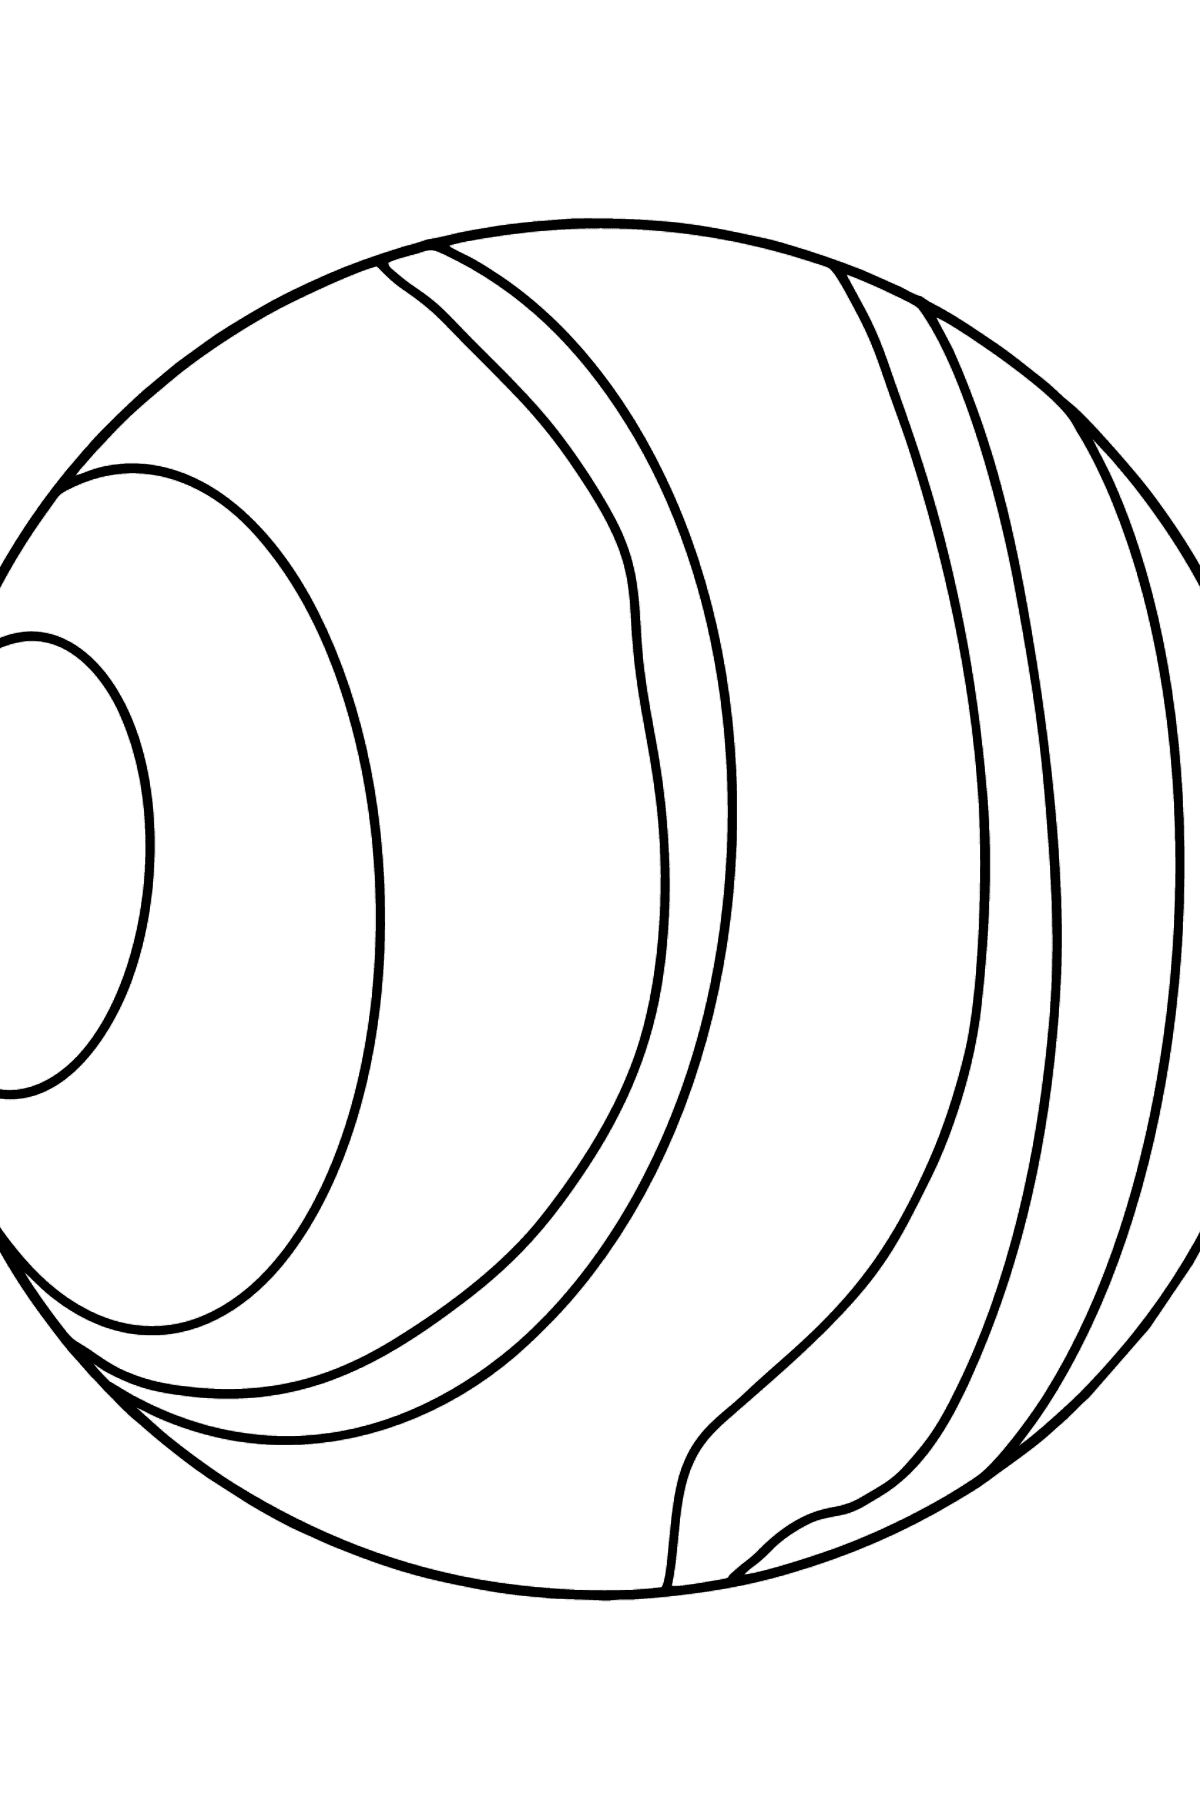 Uranus coloring page - Coloring Pages for Kids